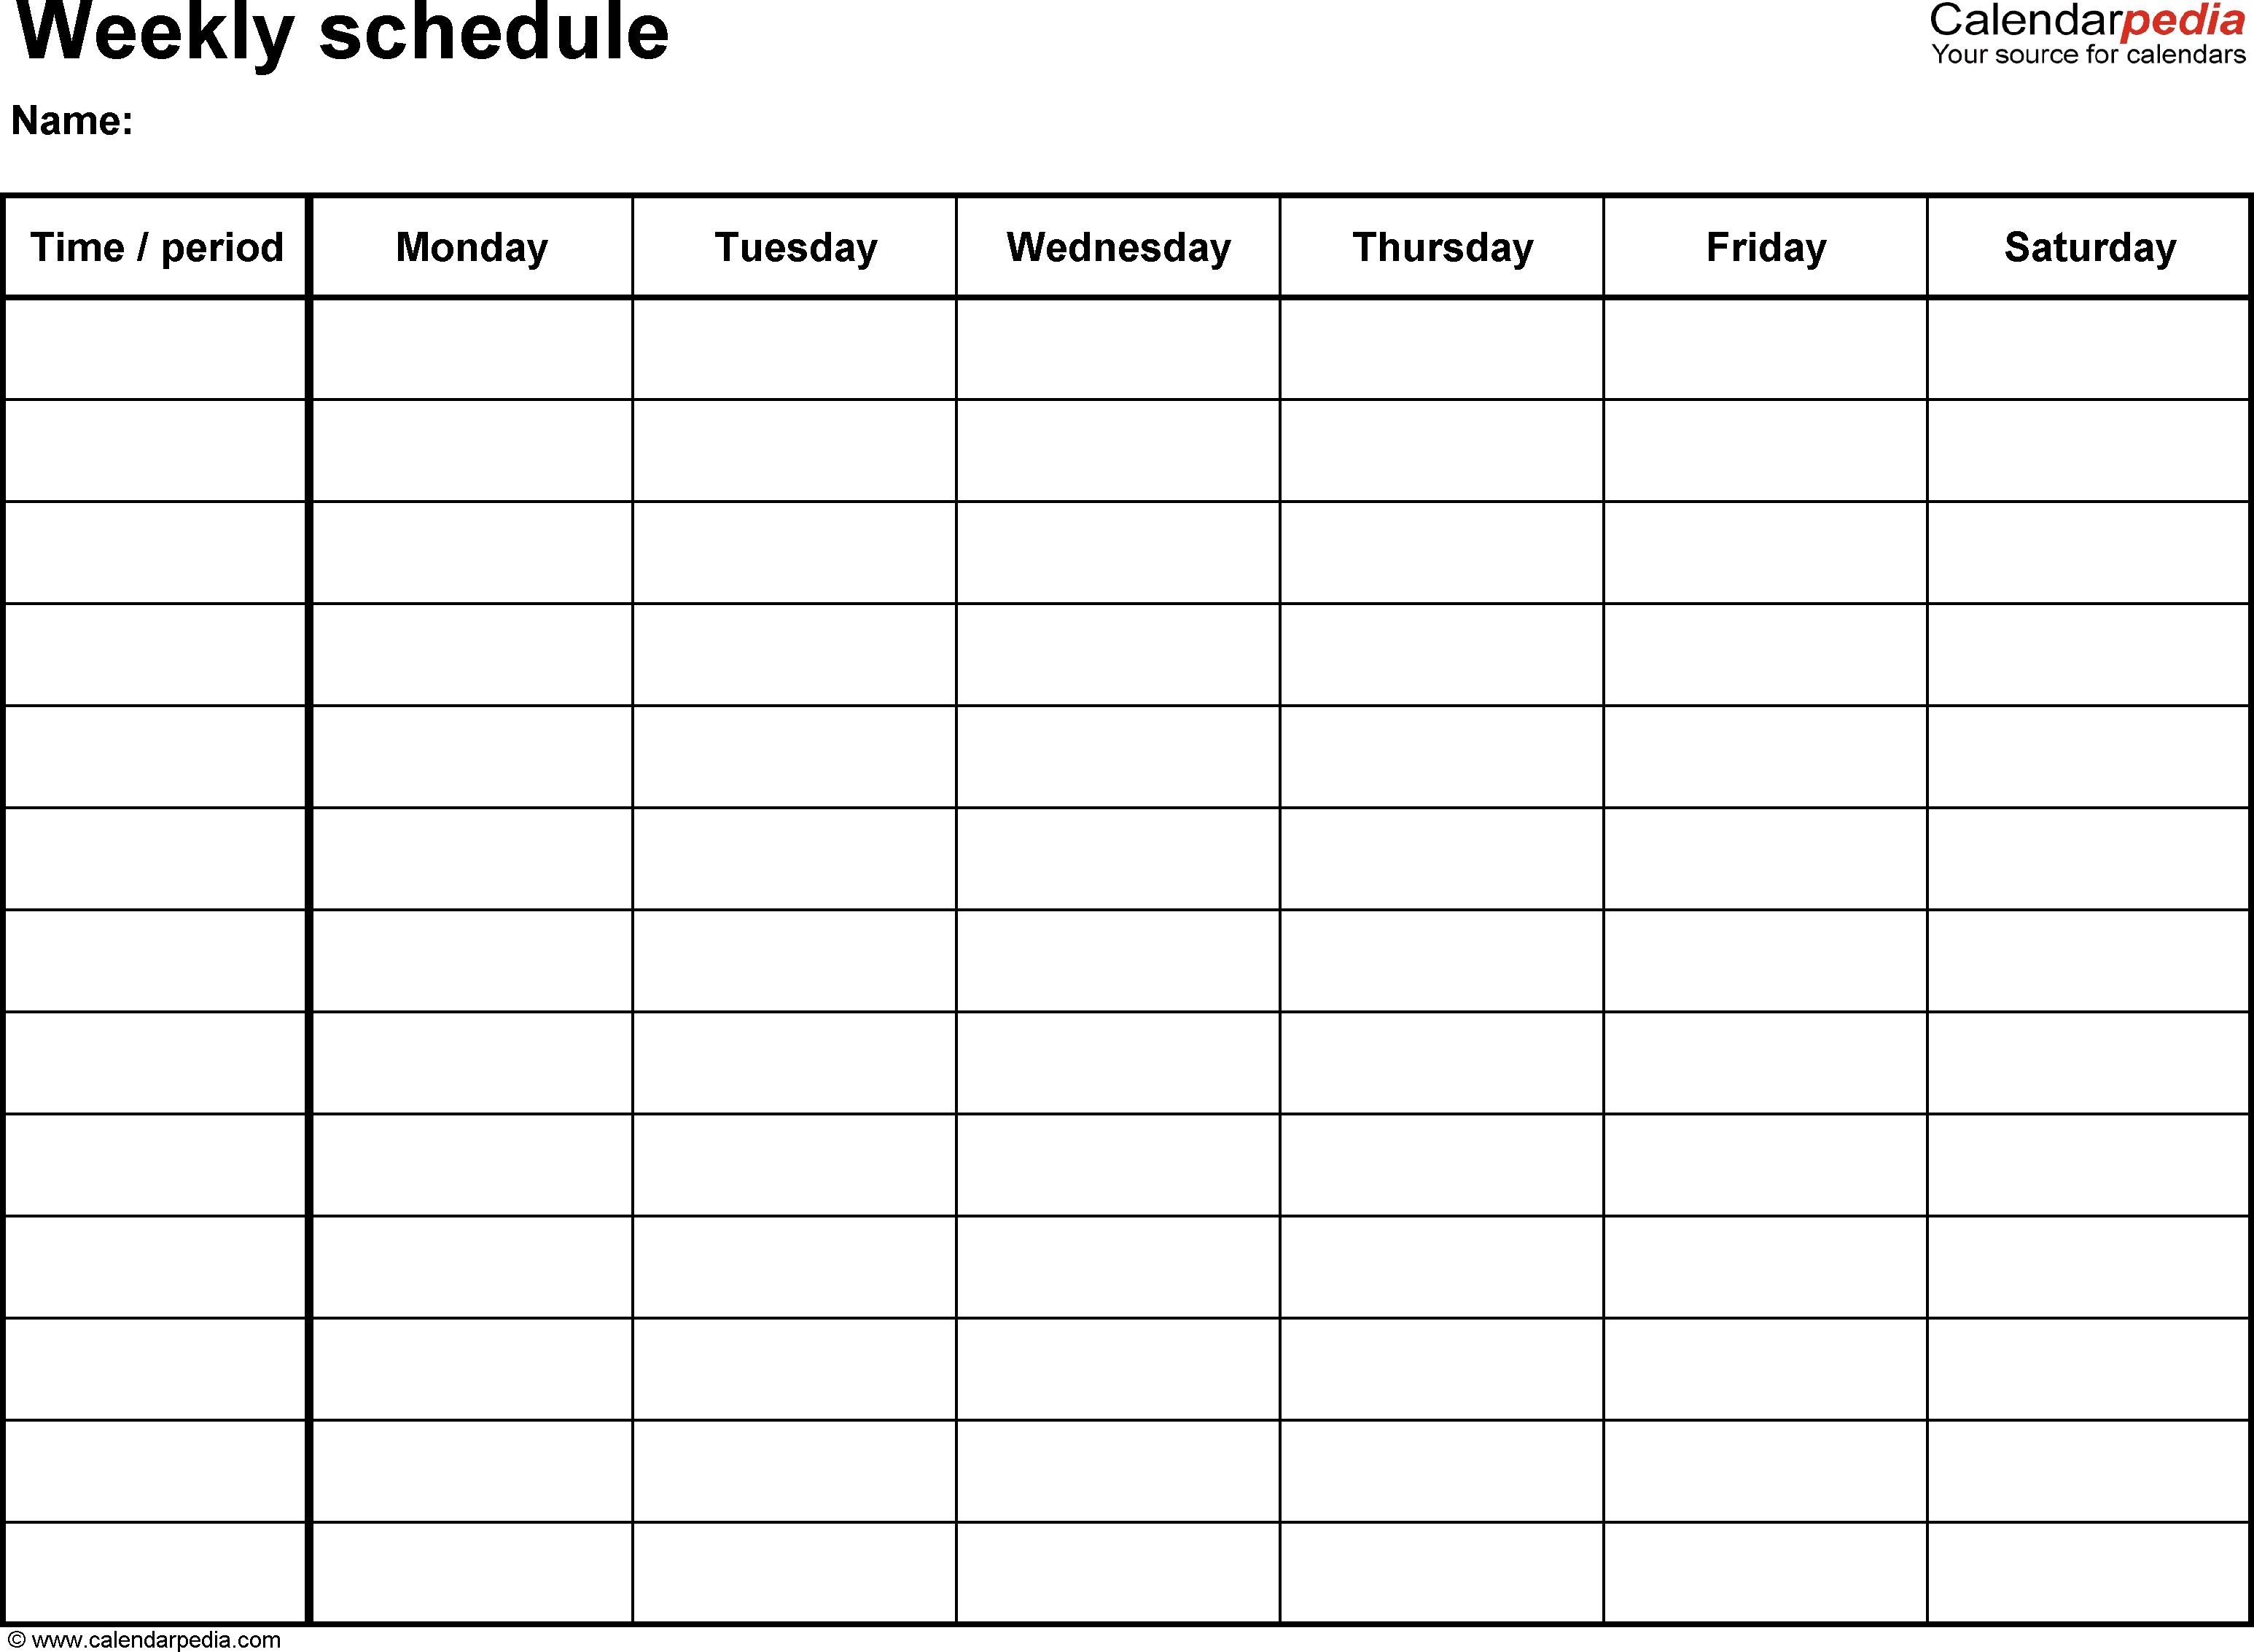 Fillable Weekly Calendar Printable Weekly Calendar With 15 Free Fillable Weekly Schedule Templates